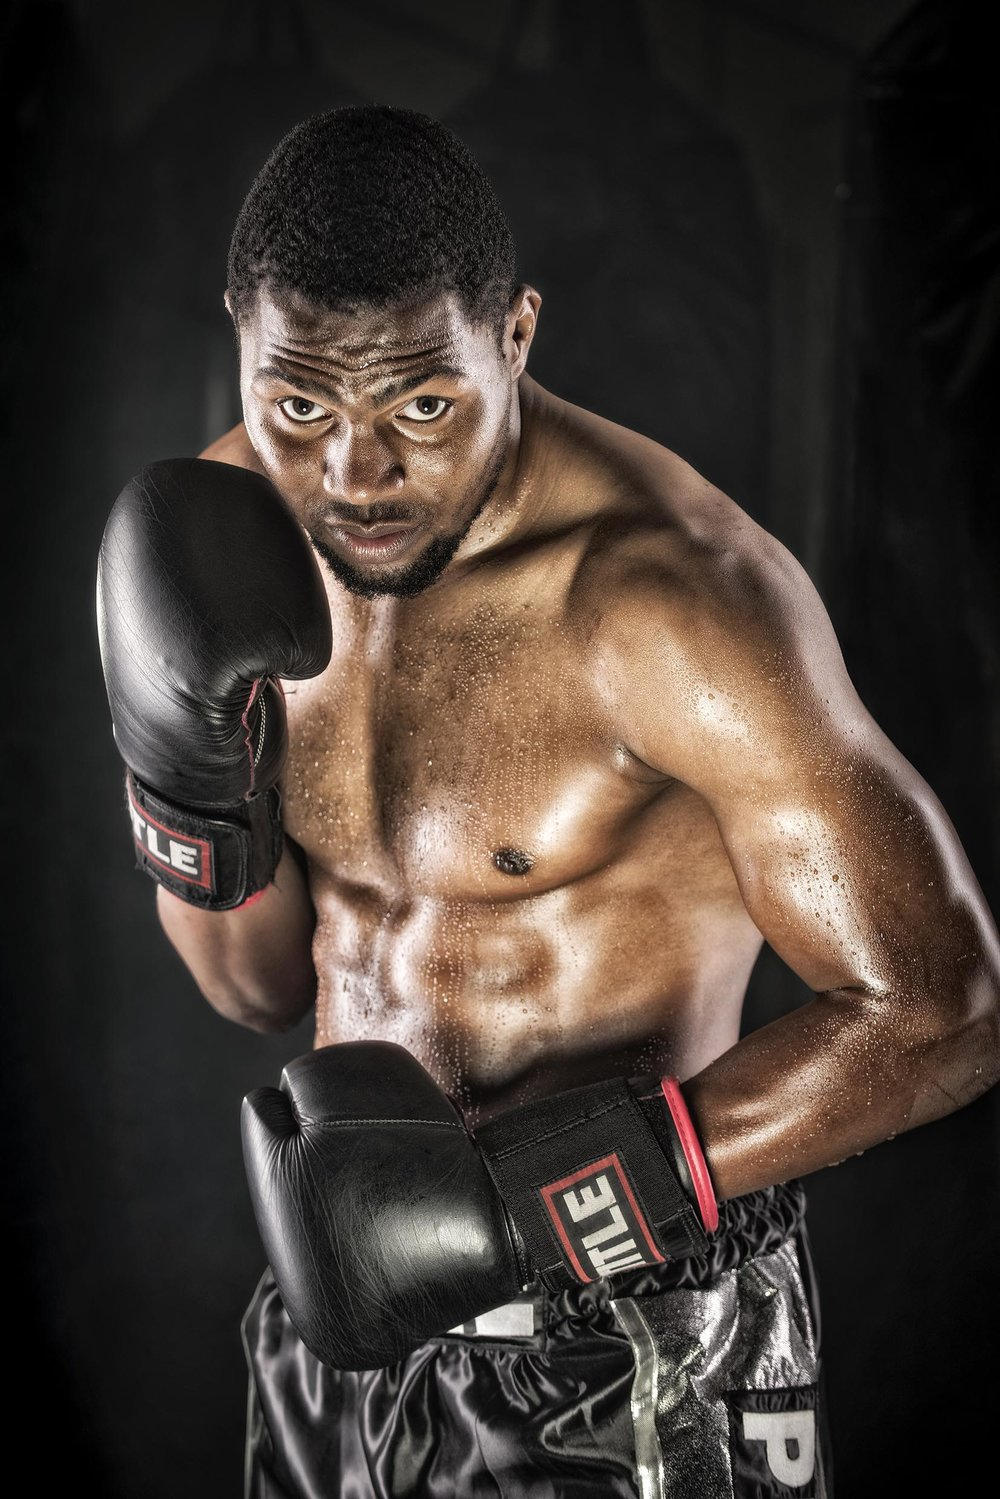 unchained boxing_7278.jpg